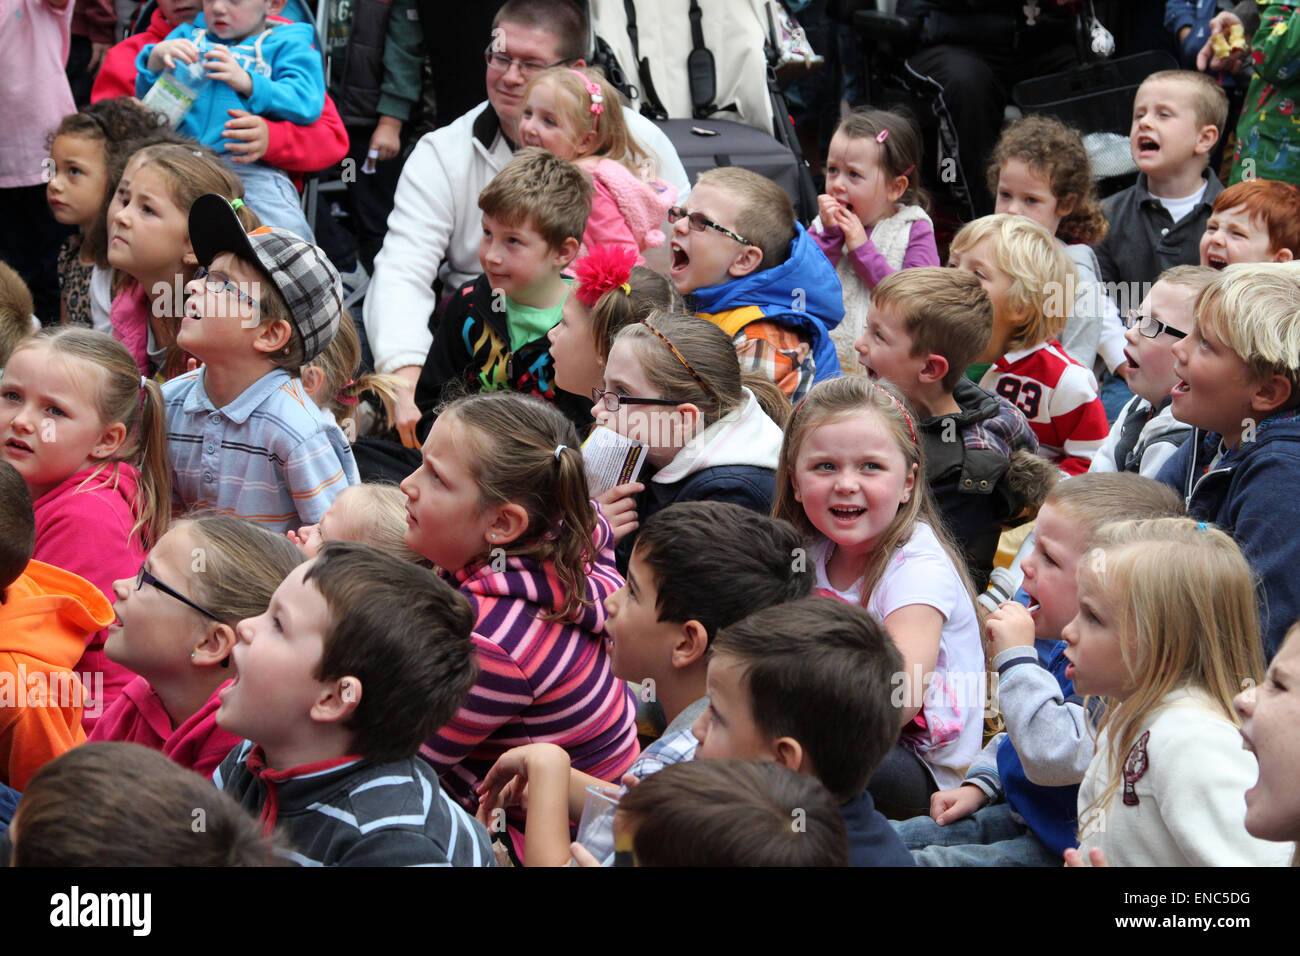 Children Watching Performance Stock Photos Amp Children